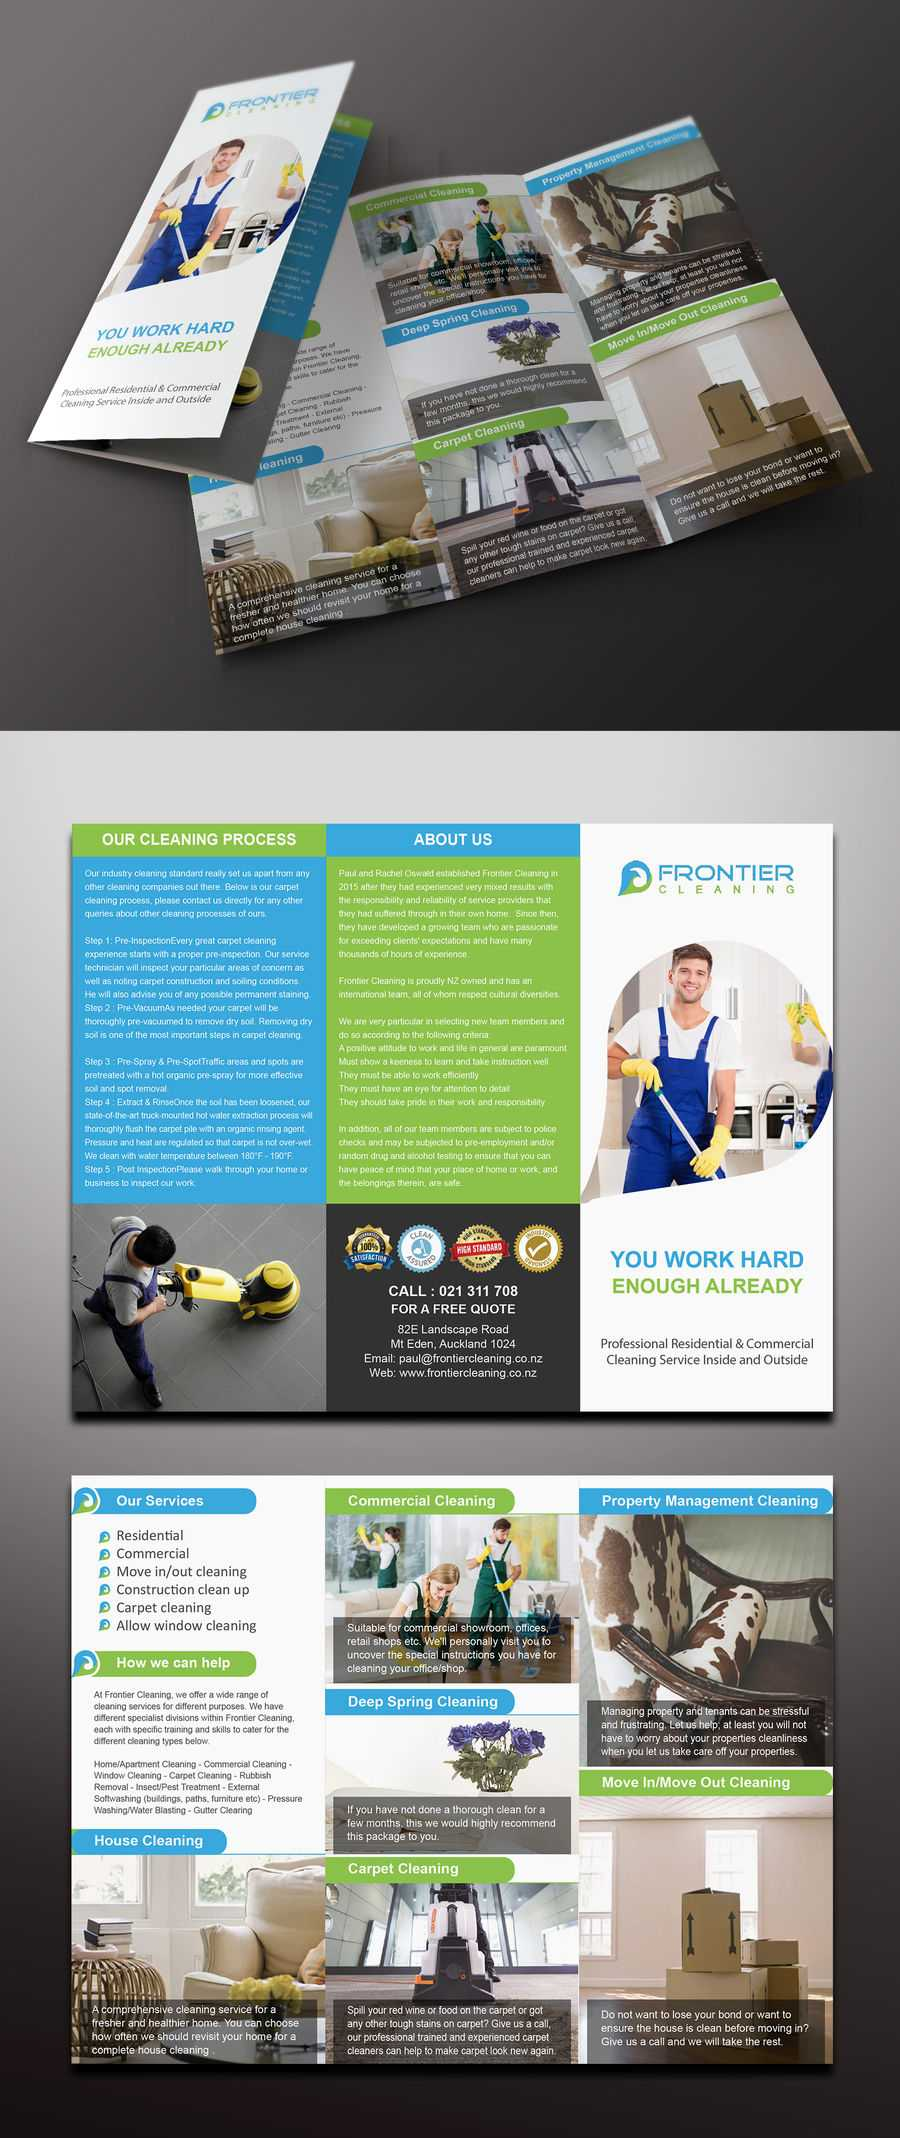 Entry #74Mamun313 For Design A 3 Fold Brochure, Business Inside Commercial Cleaning Brochure Templates